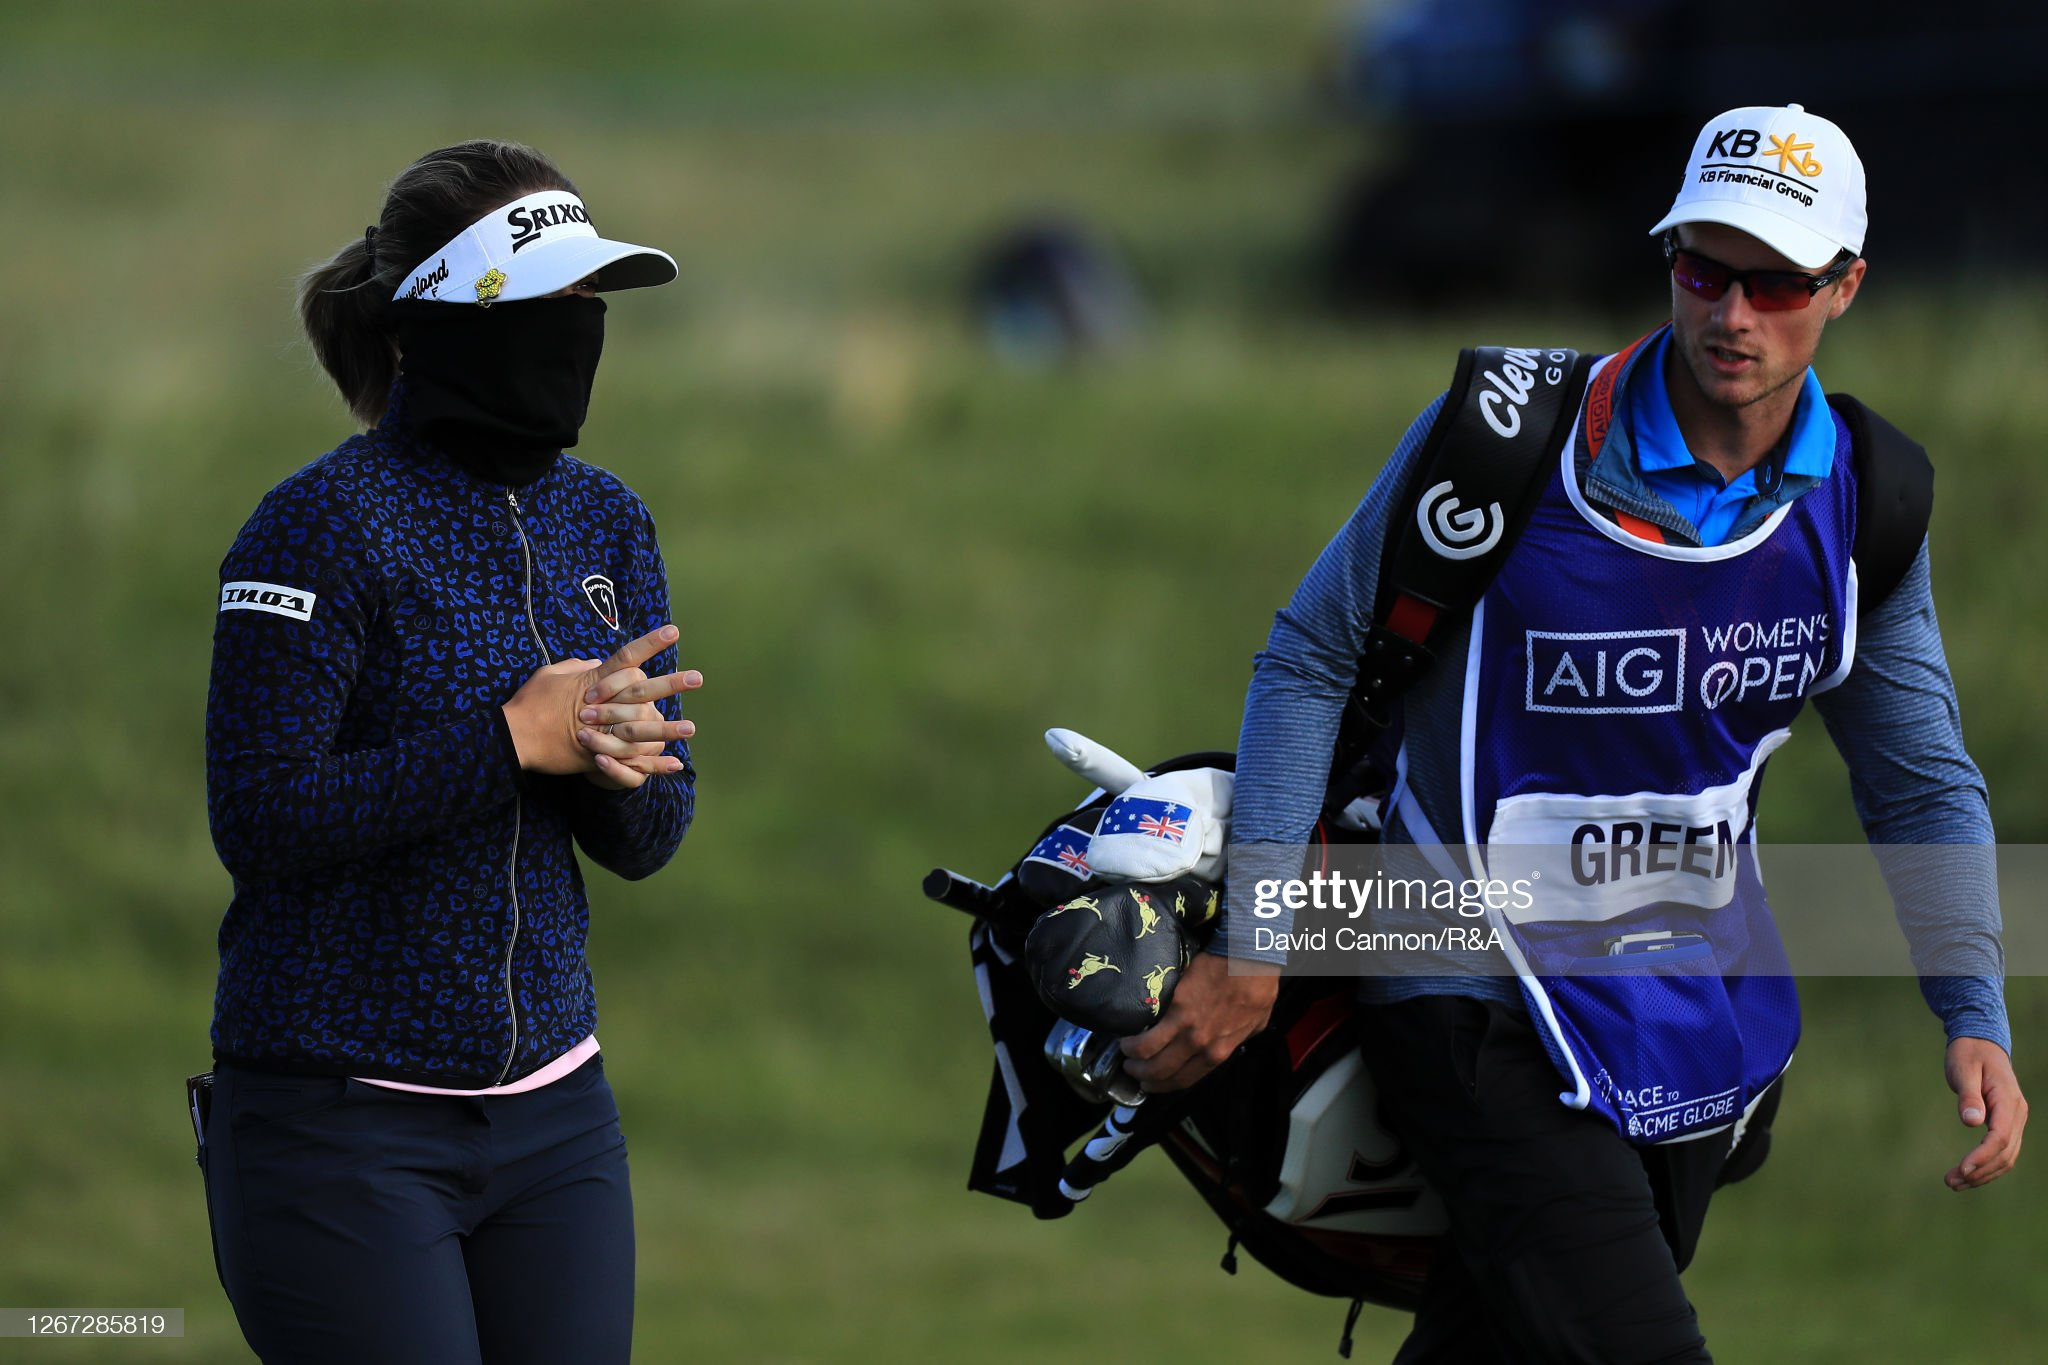 https://media.gettyimages.com/photos/hannahgreen-of-australia-covers-her-face-from-the-wind-during-day-one-picture-id1267285819?s=2048x2048